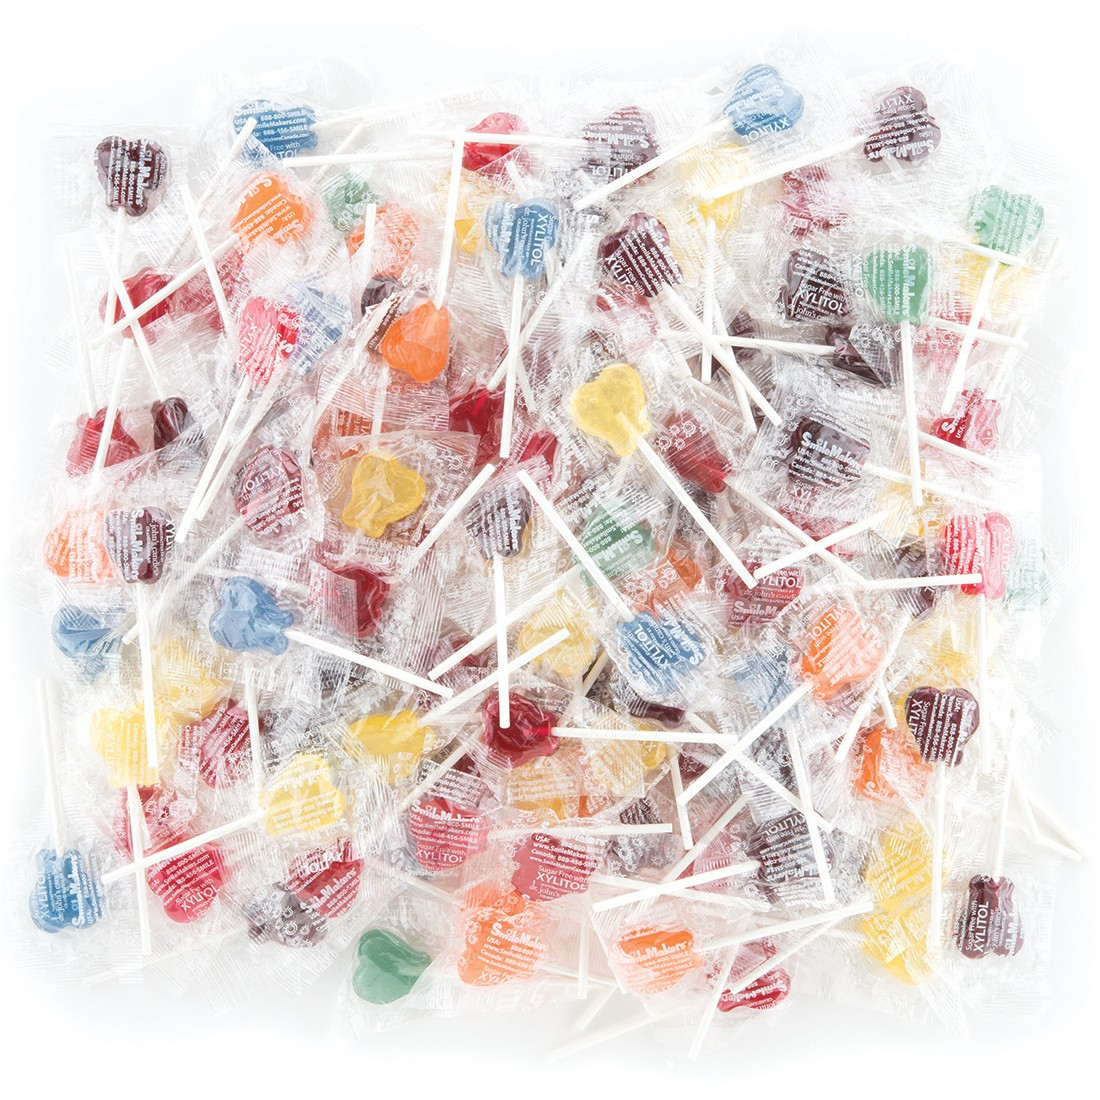 Dr. John's® Xylitol Tooth Shaped Lollipops [image]